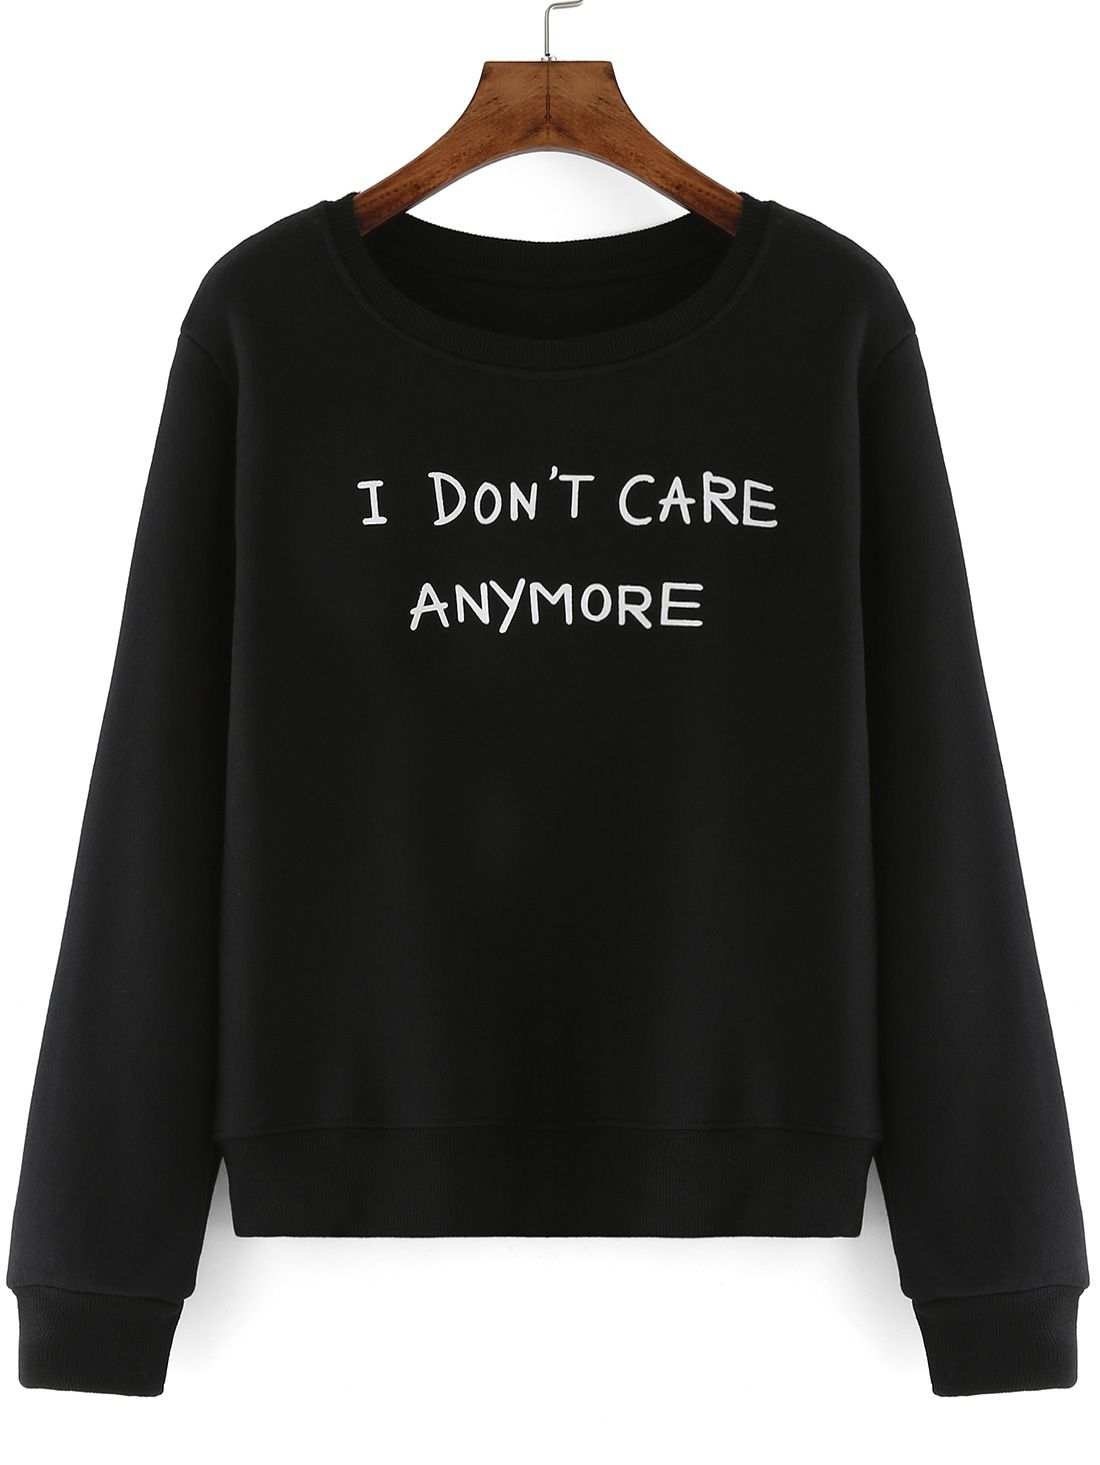 8aae706f5 i don't care anymore ,letter print sweatshirt .Funny printing sweat shirt  for women .This is black pullover one for you.